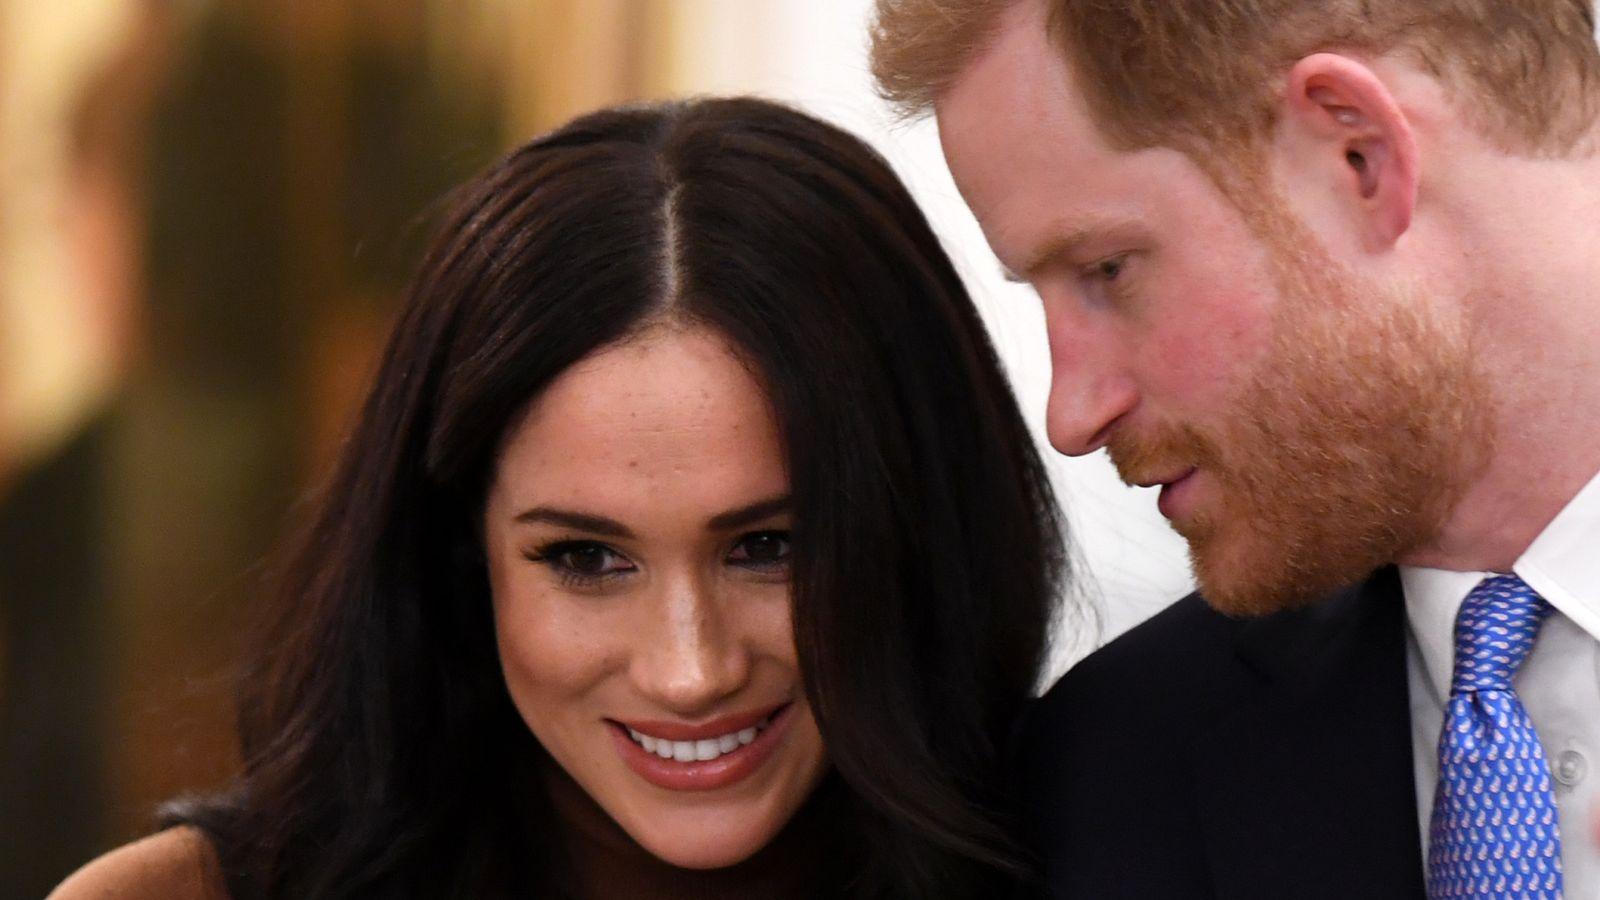 Harry and Meghan to lose Canadian security as they step back from duties